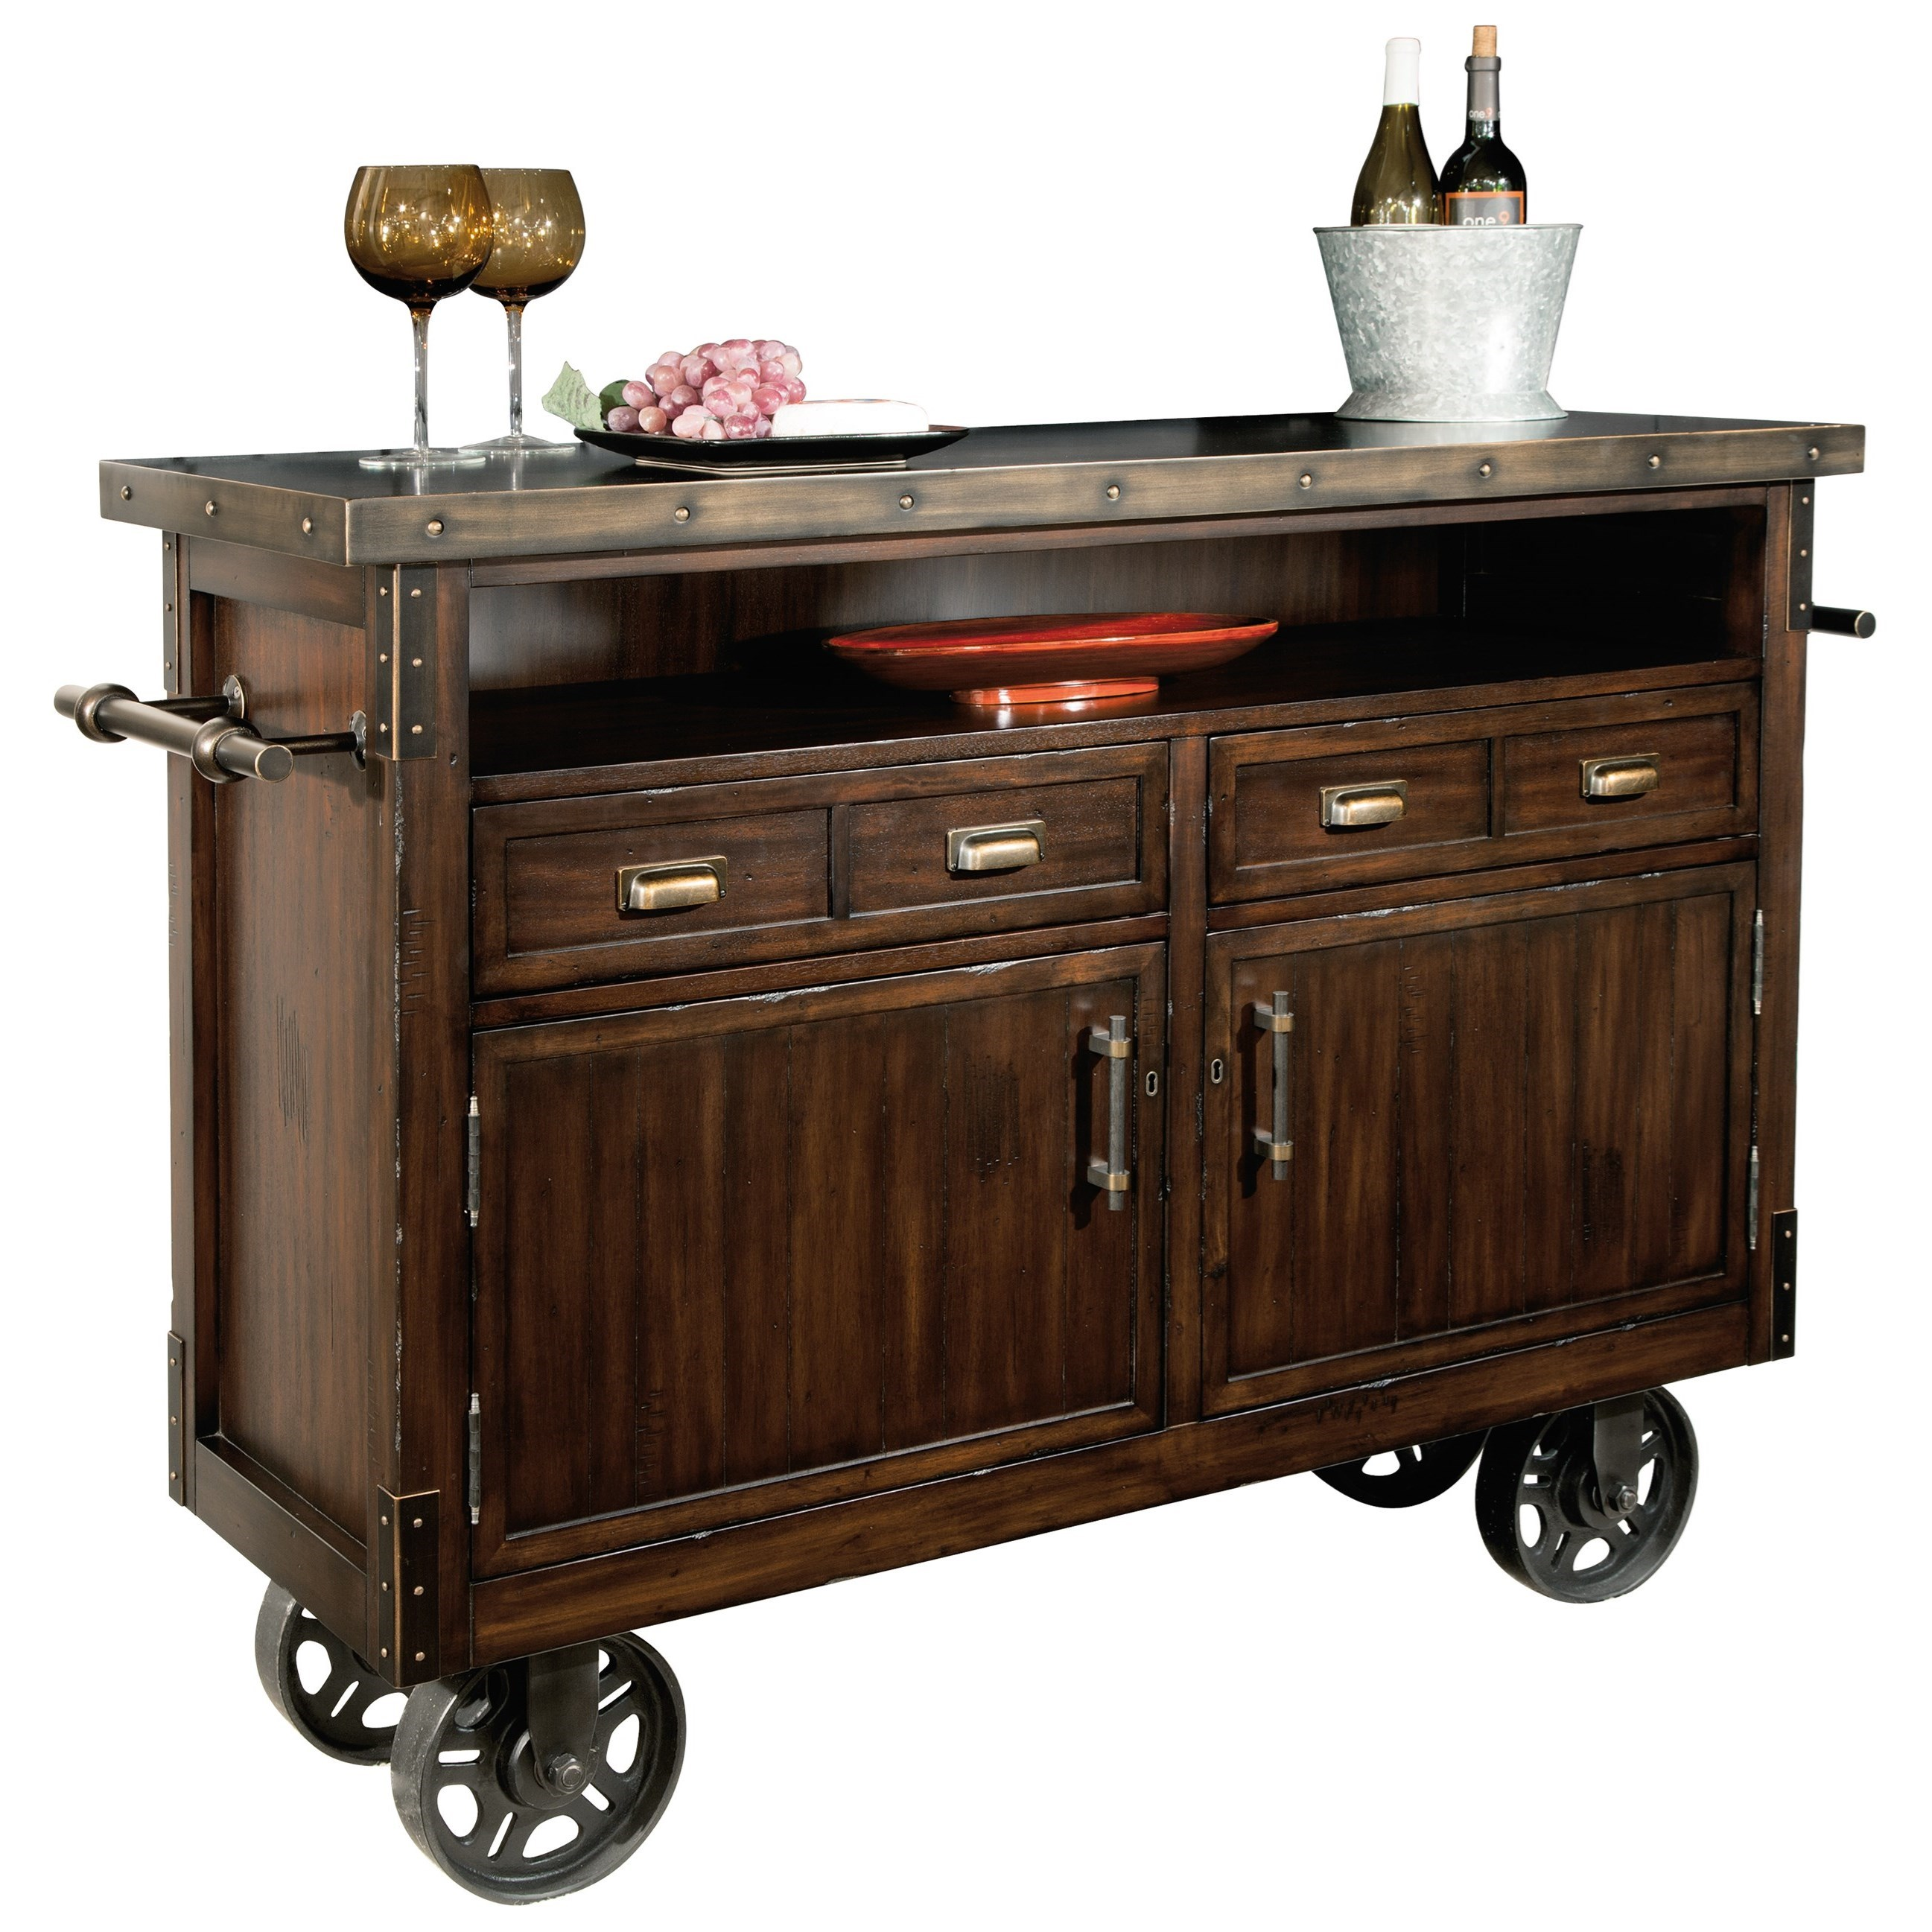 Wine & Bar Furnishings Barrow's Wine and Bar Console by Howard Miller at Wilson's Furniture